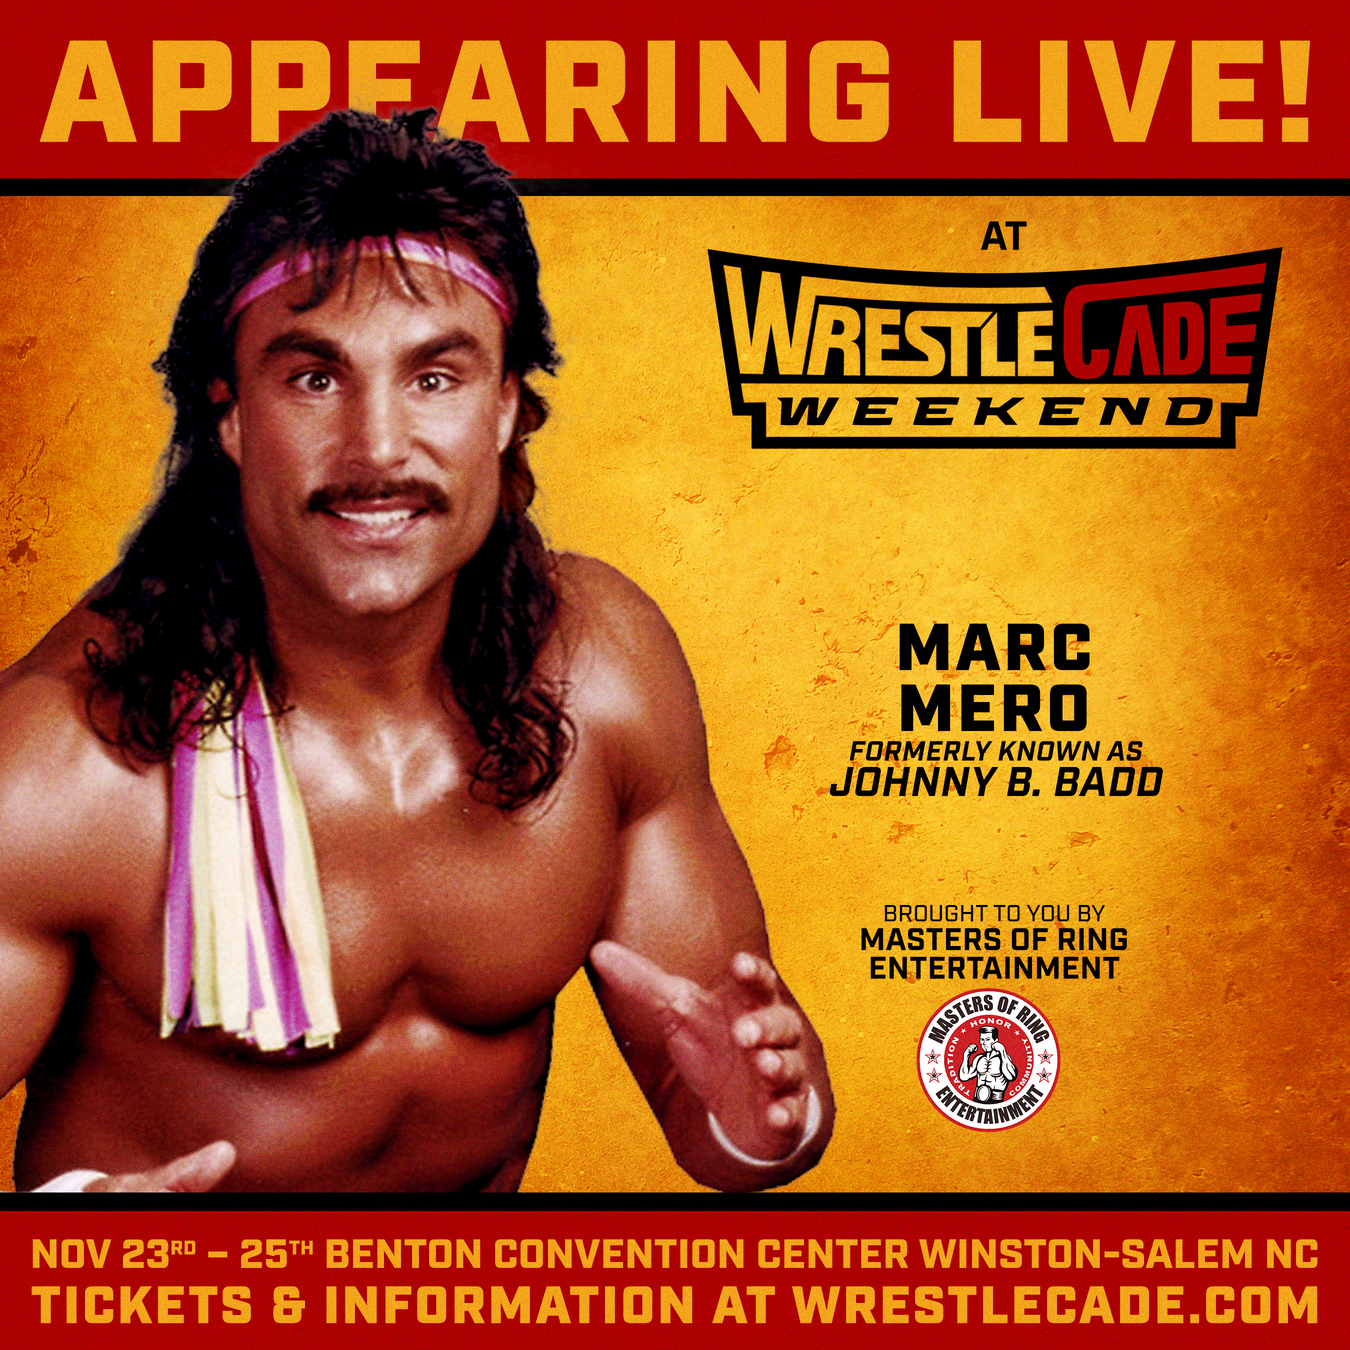 Marc Mero WrestleCade 2018 Masters Of Ring Entertainment MORE Wrestling